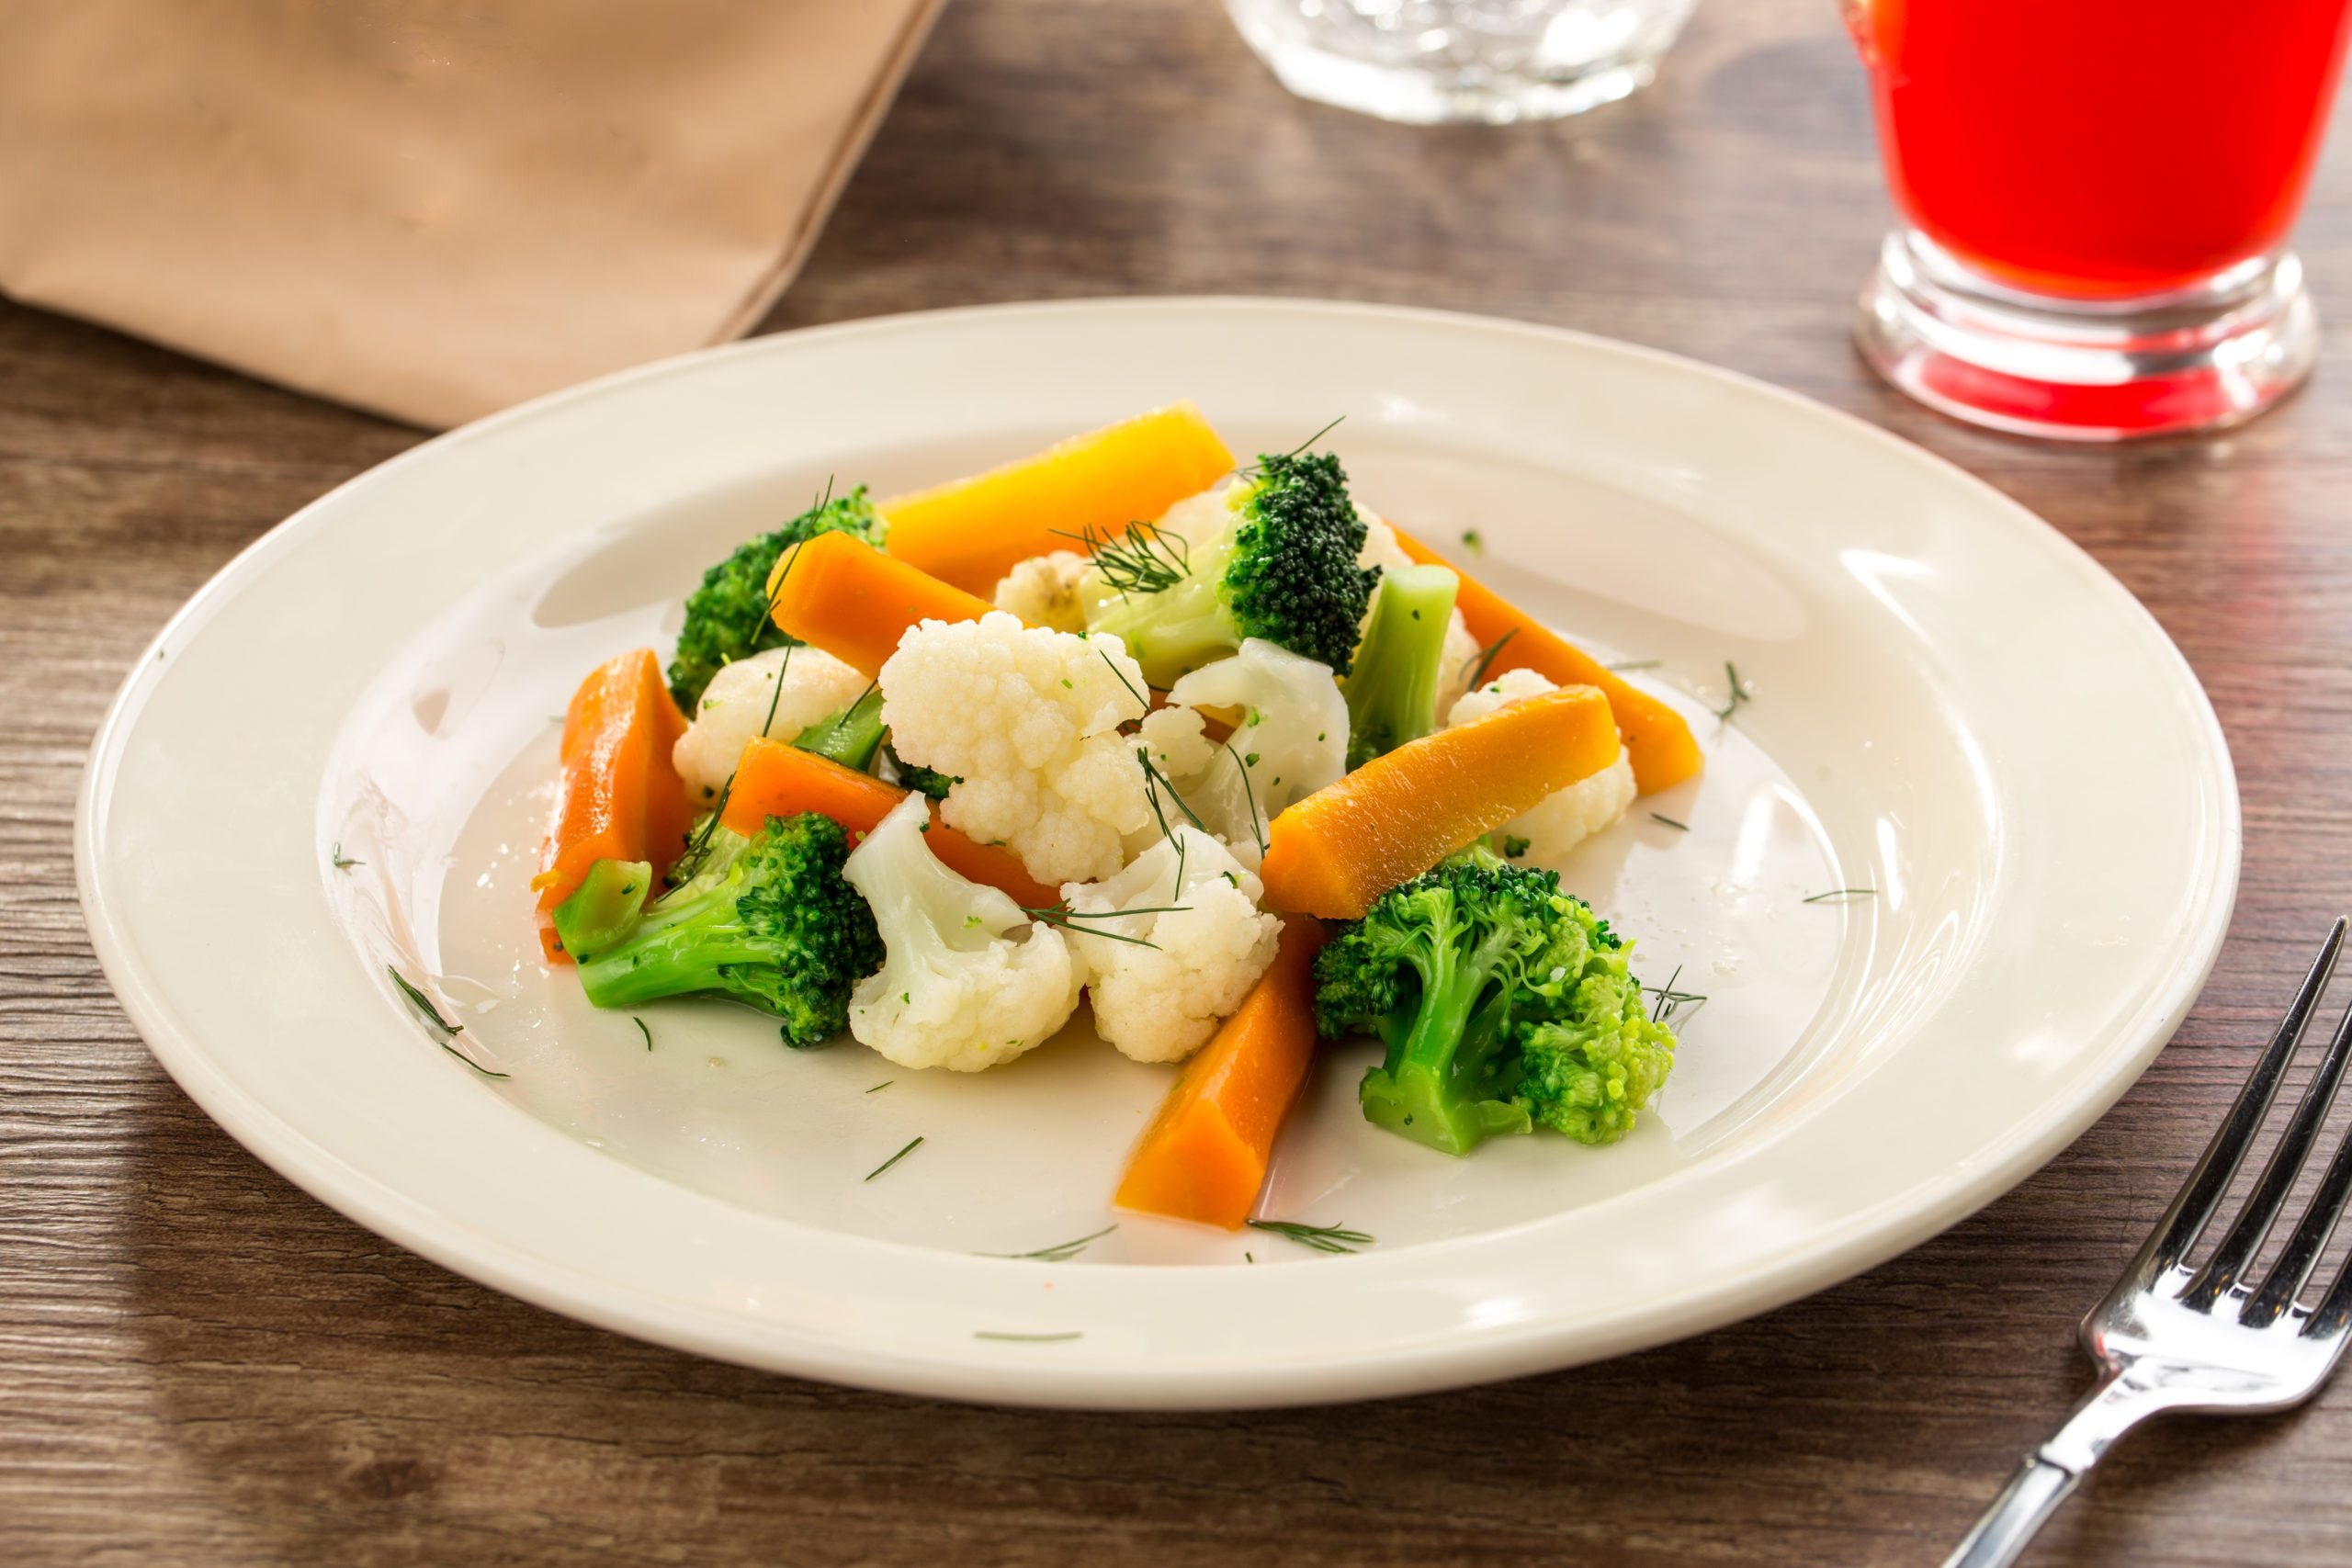 Mixed vegetables cauliflower, broccoli and carrots on white plate on wooden background